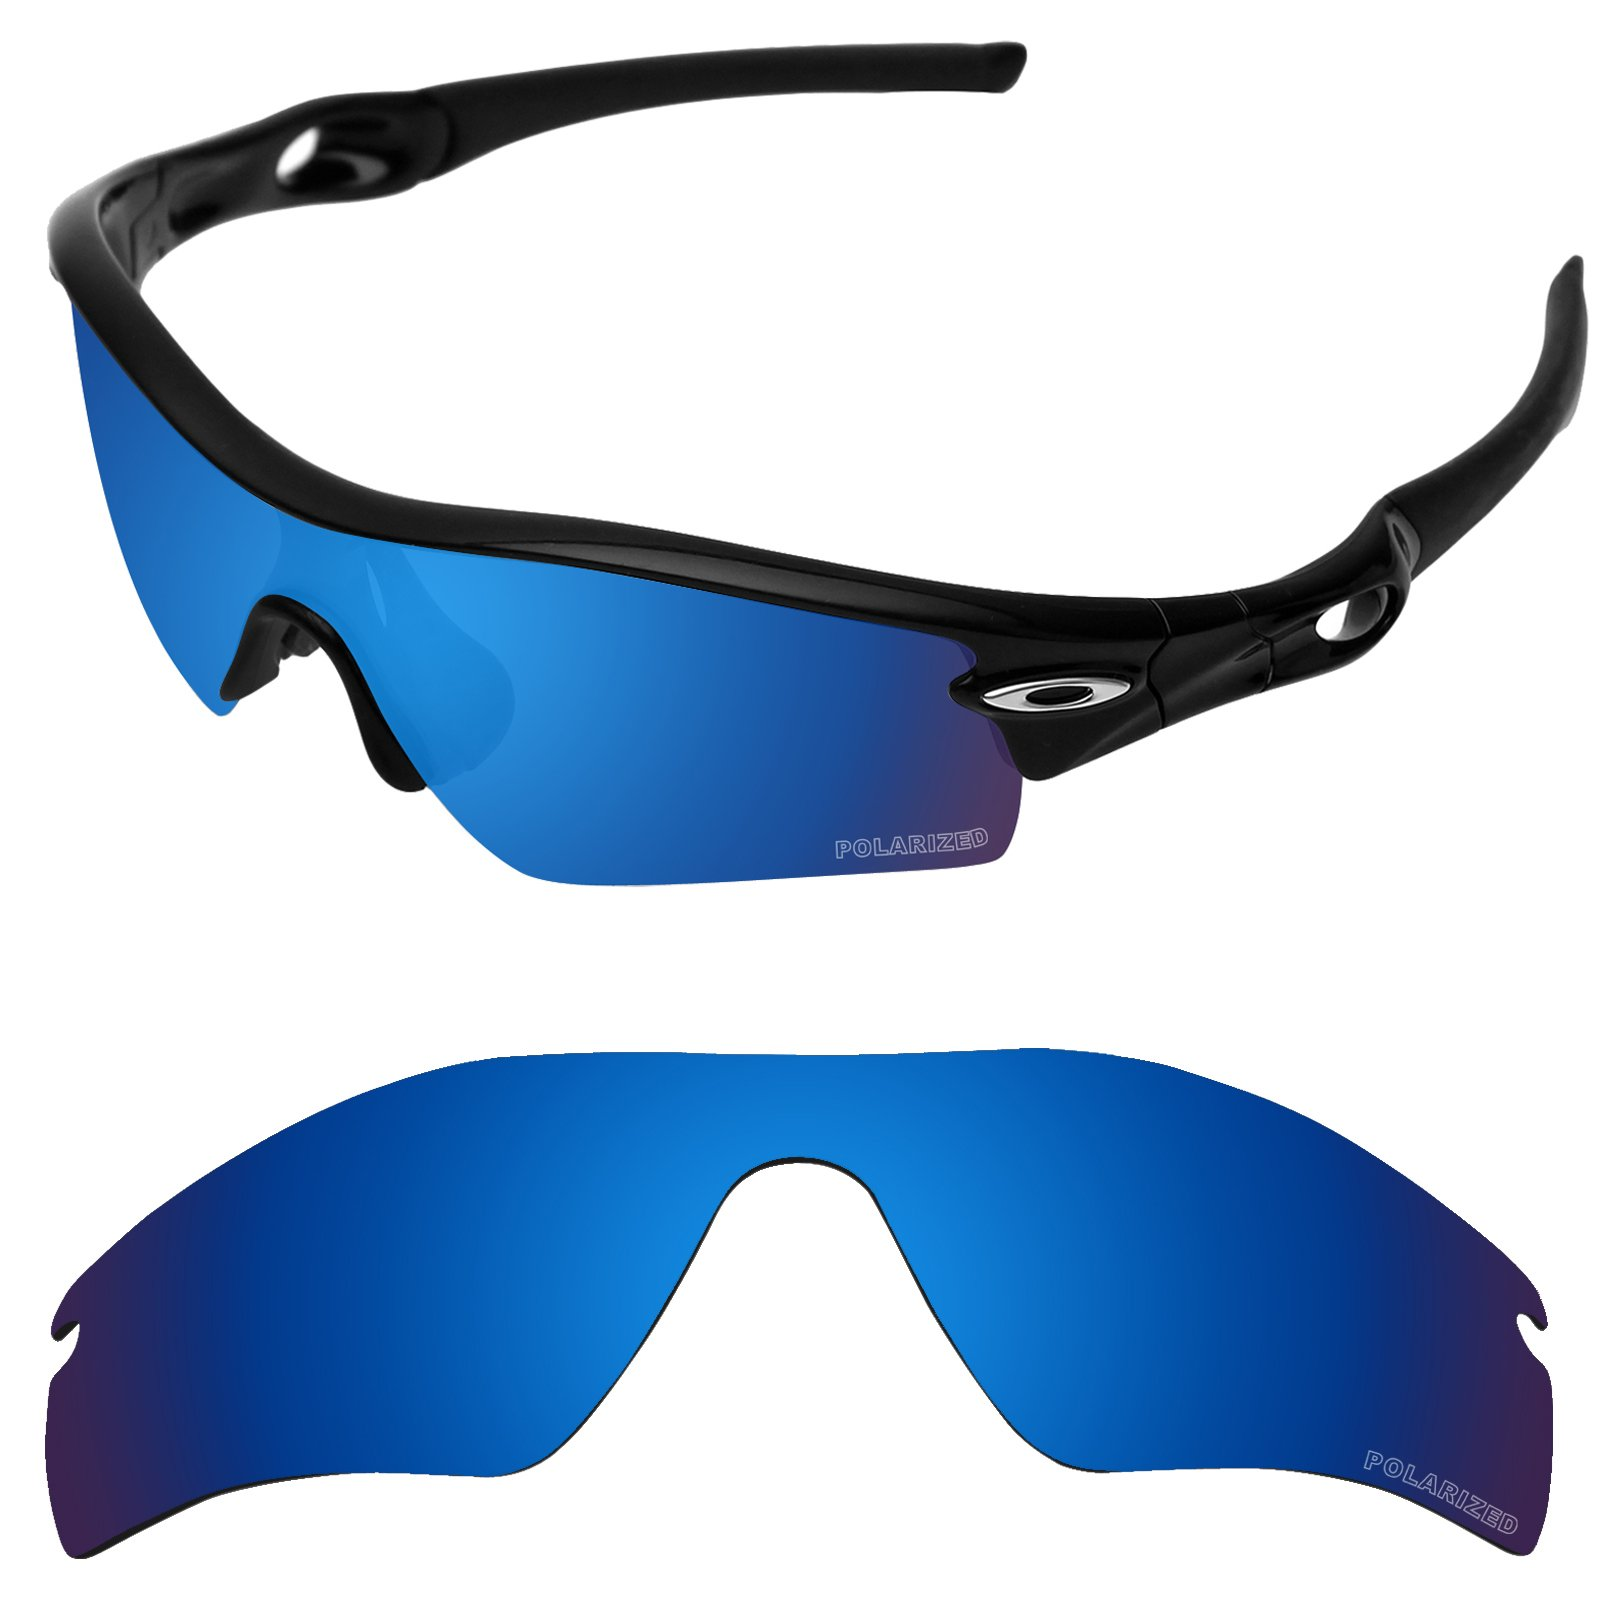 Tintart Performance Replacement Lenses for Oakley Radar Path Sunglass Polarized Etched-Sapphire Blue by Tintart